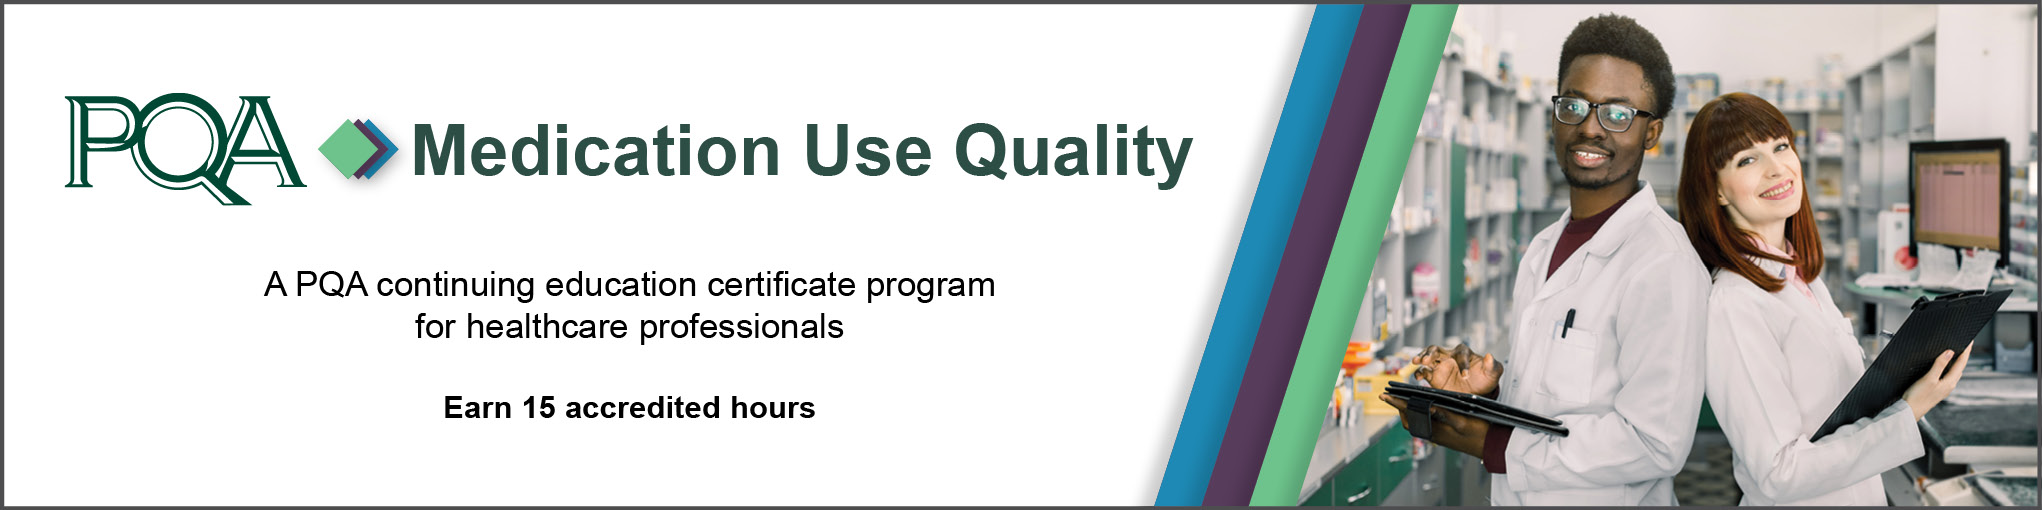 Medication Use Quality - An Education Training and Certificate Program